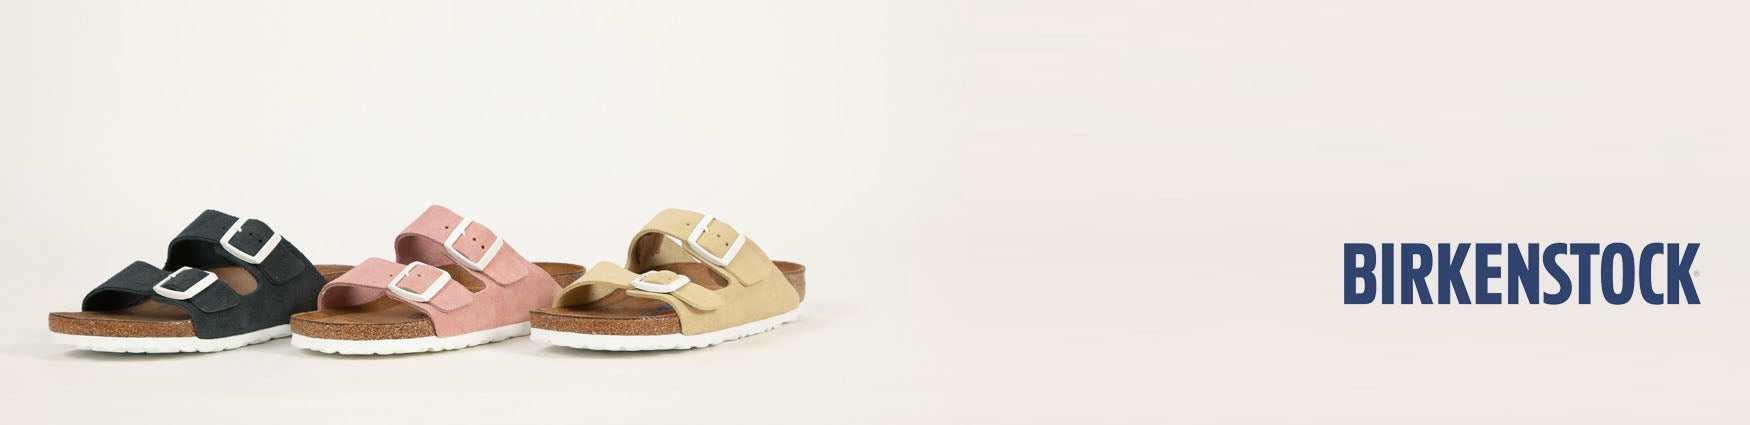 Birkenstock Arizona Suede Sandals | Shop online from Roo's Beach UK